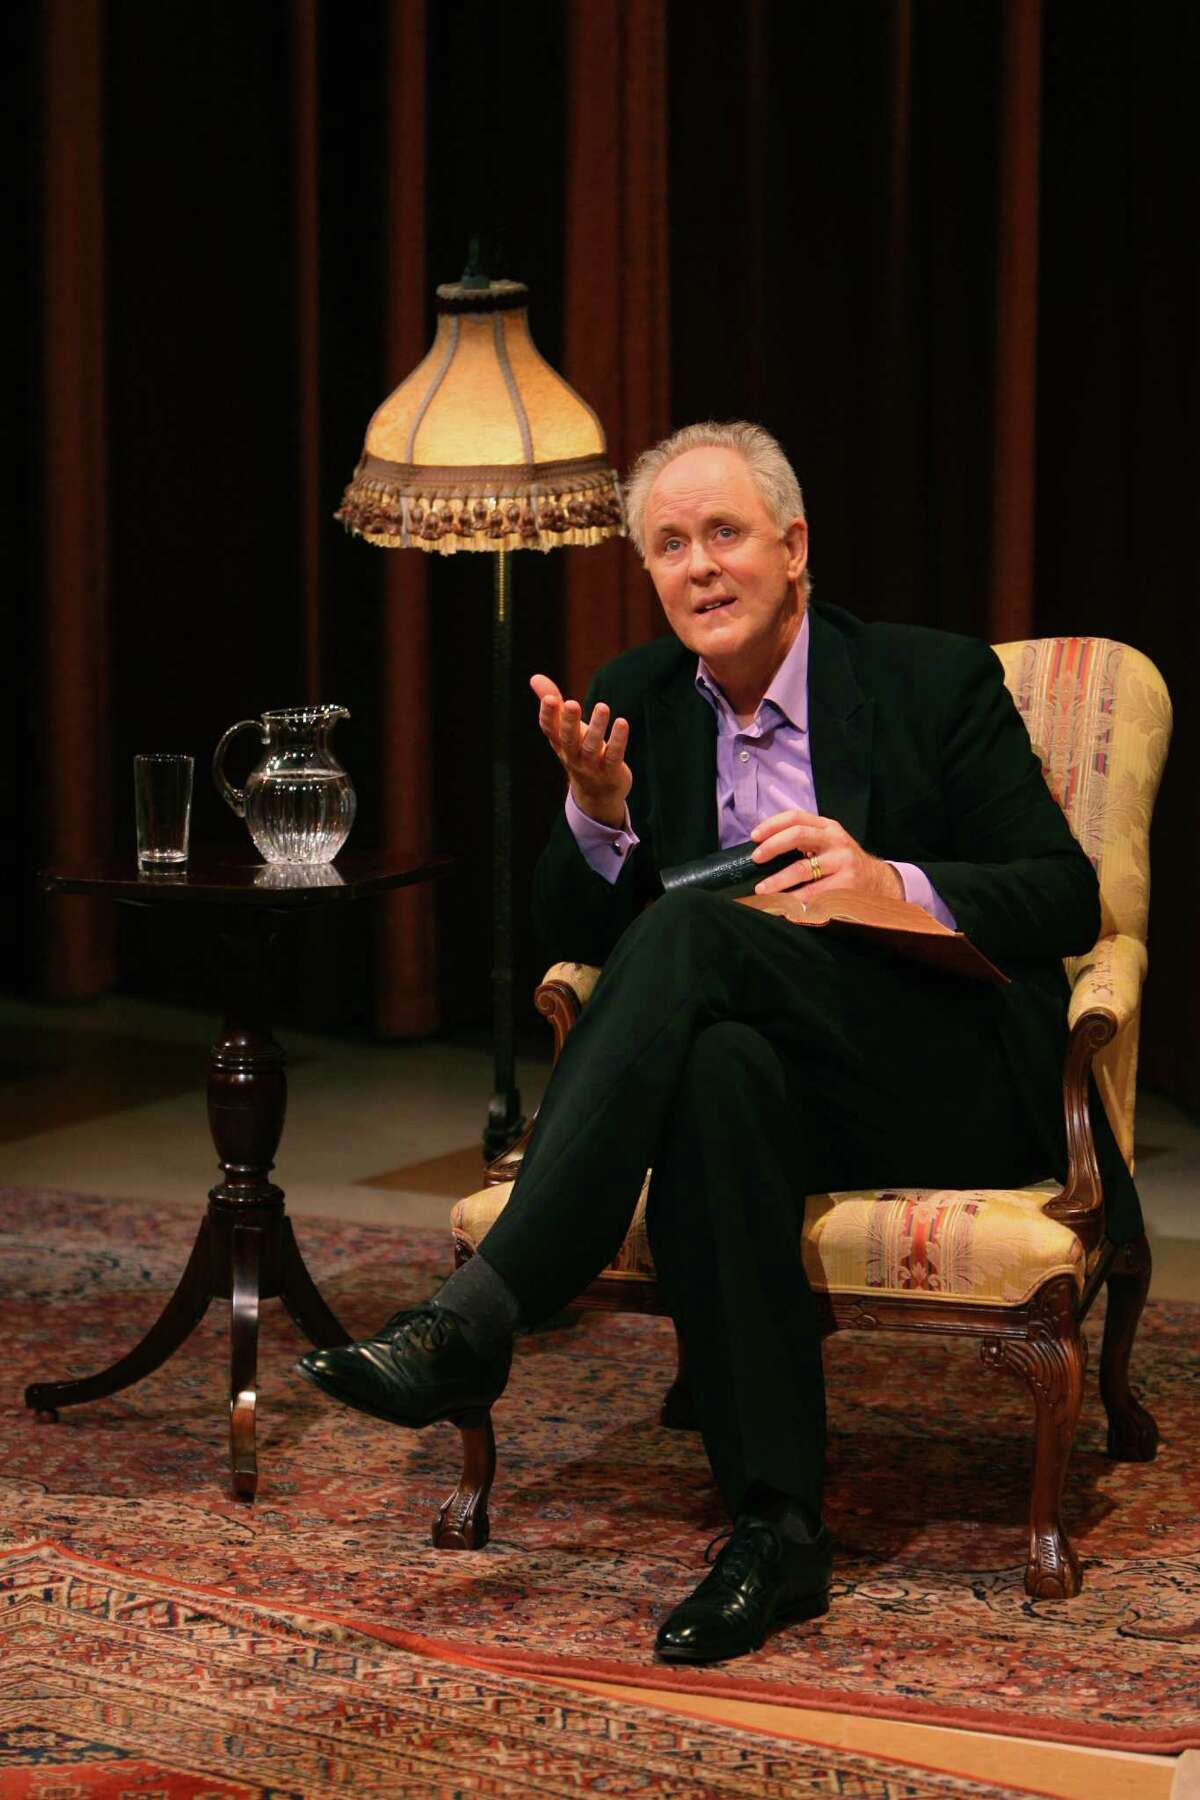 """Two-time Oscar nominee John Lithgow reflects on storytelling as the tie that binds humanity in his one-man show, """"Stories by Heart,"""" which will be presented Friday, Nov. 15 at the Regina A. Quick Center for the Performing Arts on the Fairfield University campus."""